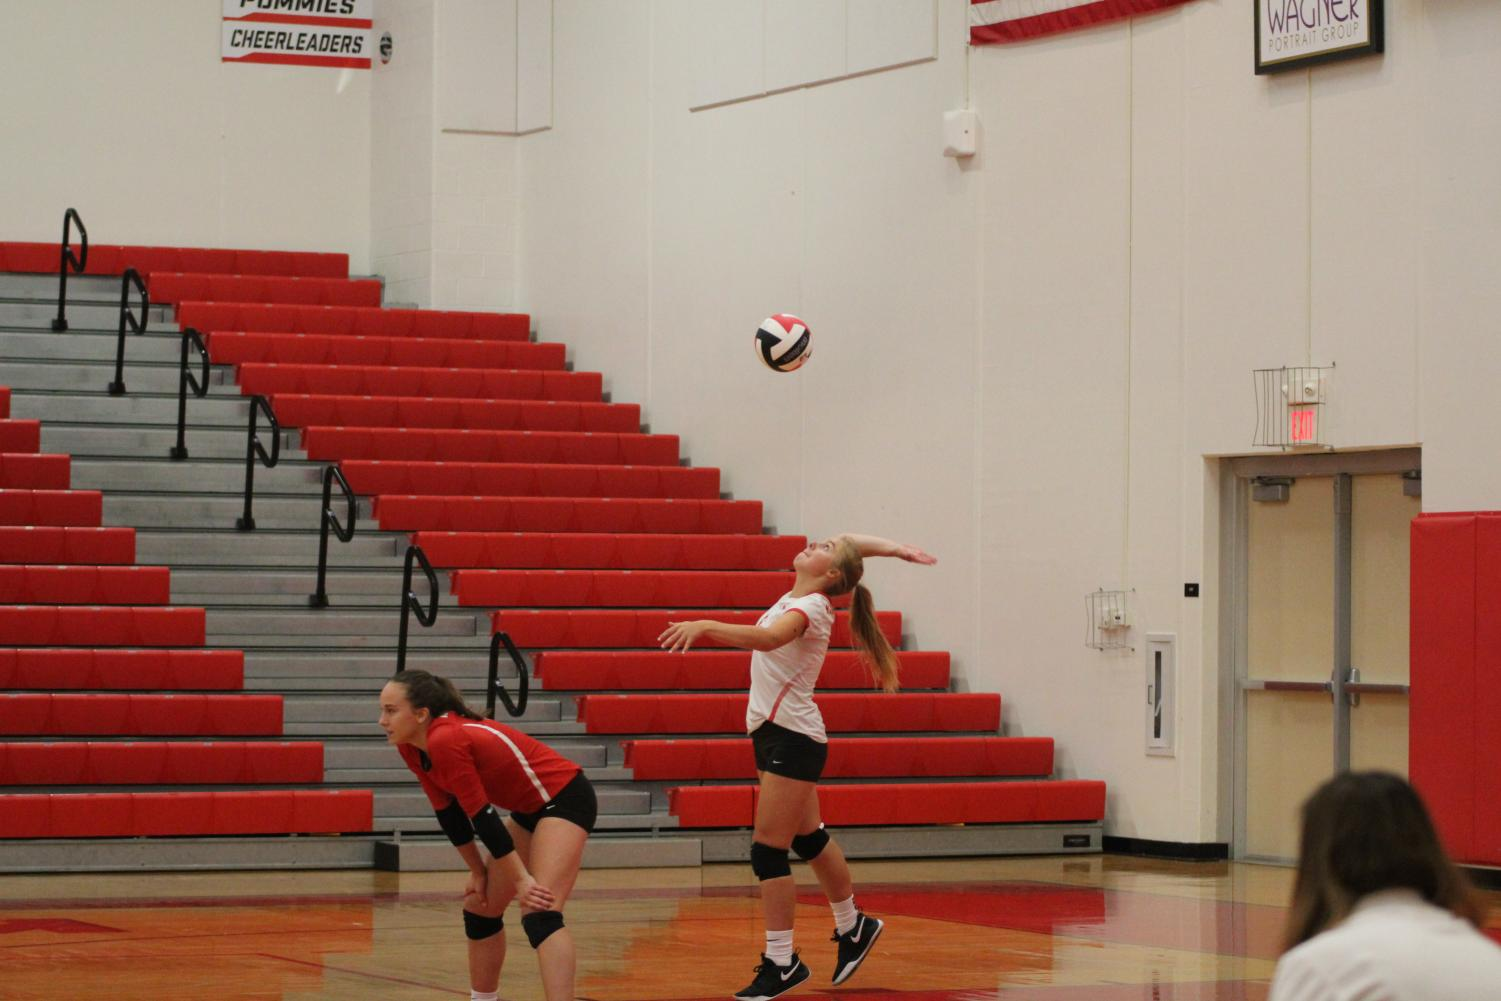 Olivia+Bolten%2C+grade+10%2C+serves+the+ball+in+the+JV+game.